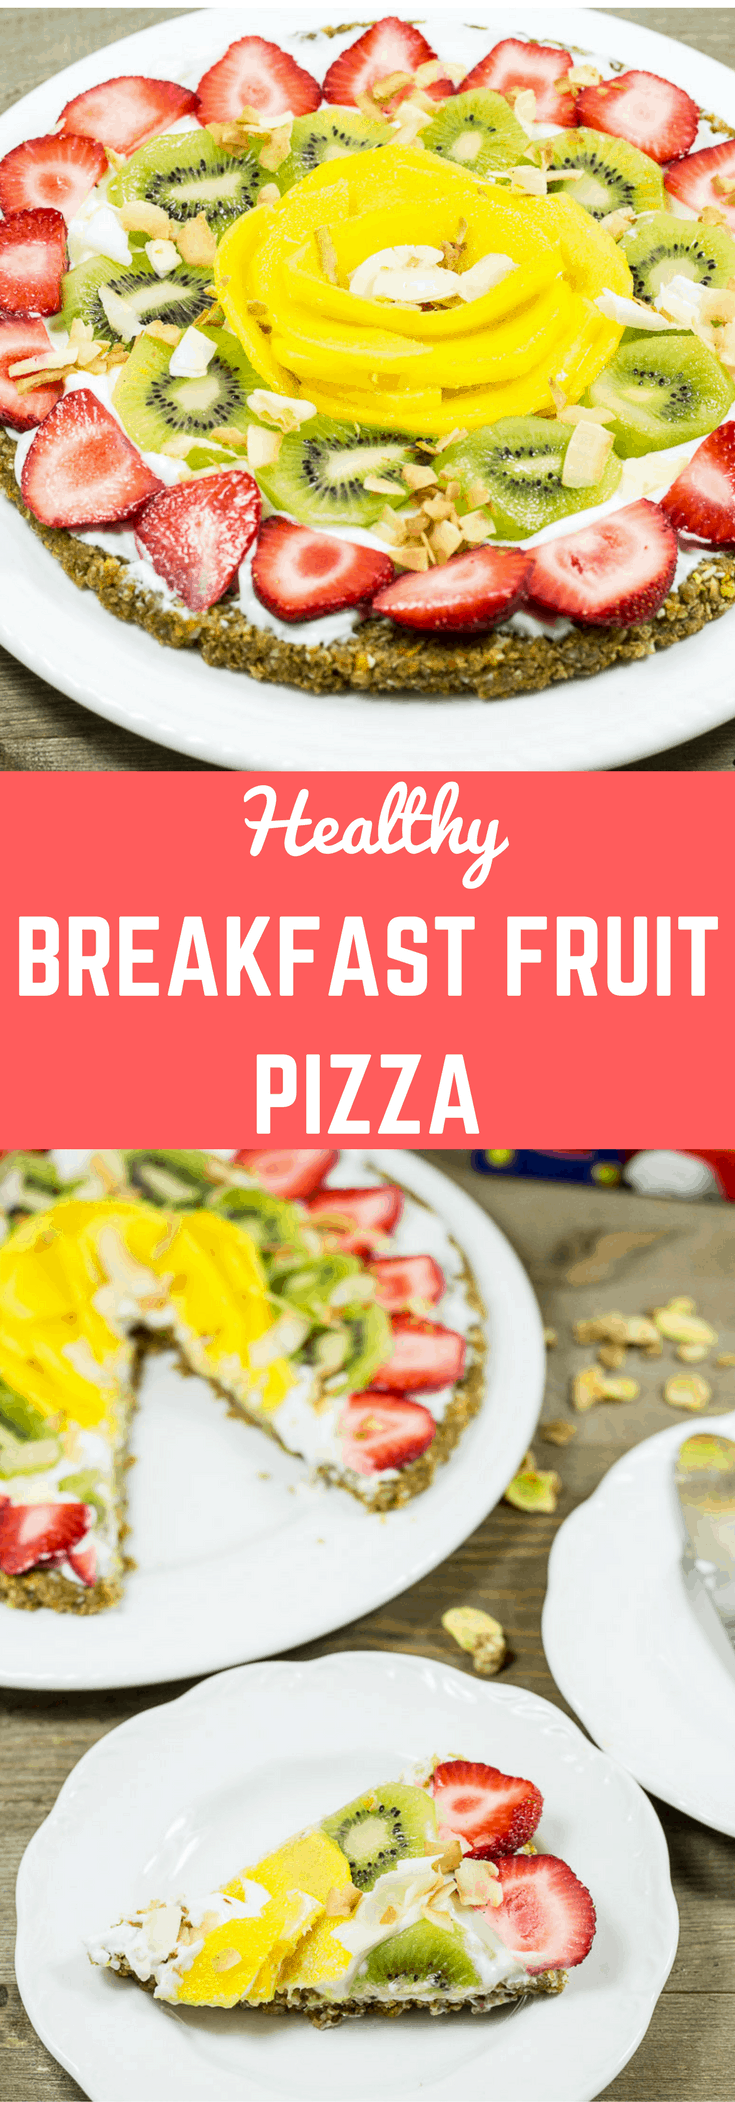 This breakfast pizza is made with a nutty cereal crust then topped with Greek yogurt and fruits. It is a healthy, quick and easy breakfast recipe.